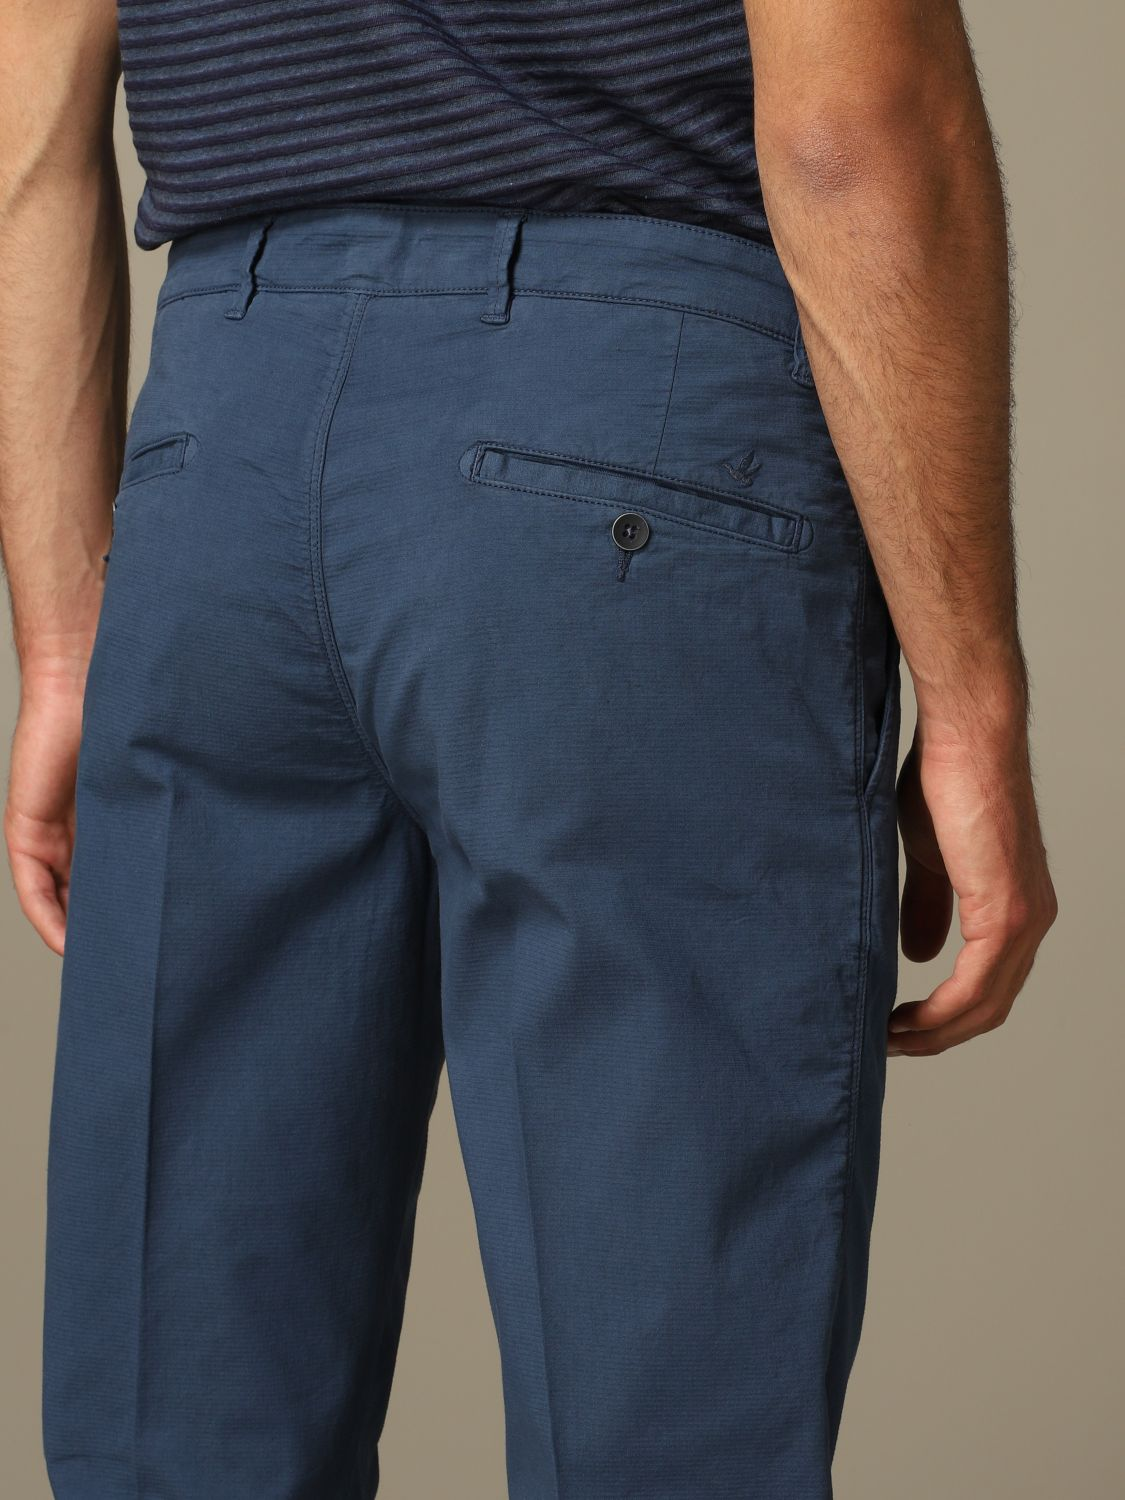 Hose Brooksfield: Hose herren Brooksfield blau 3